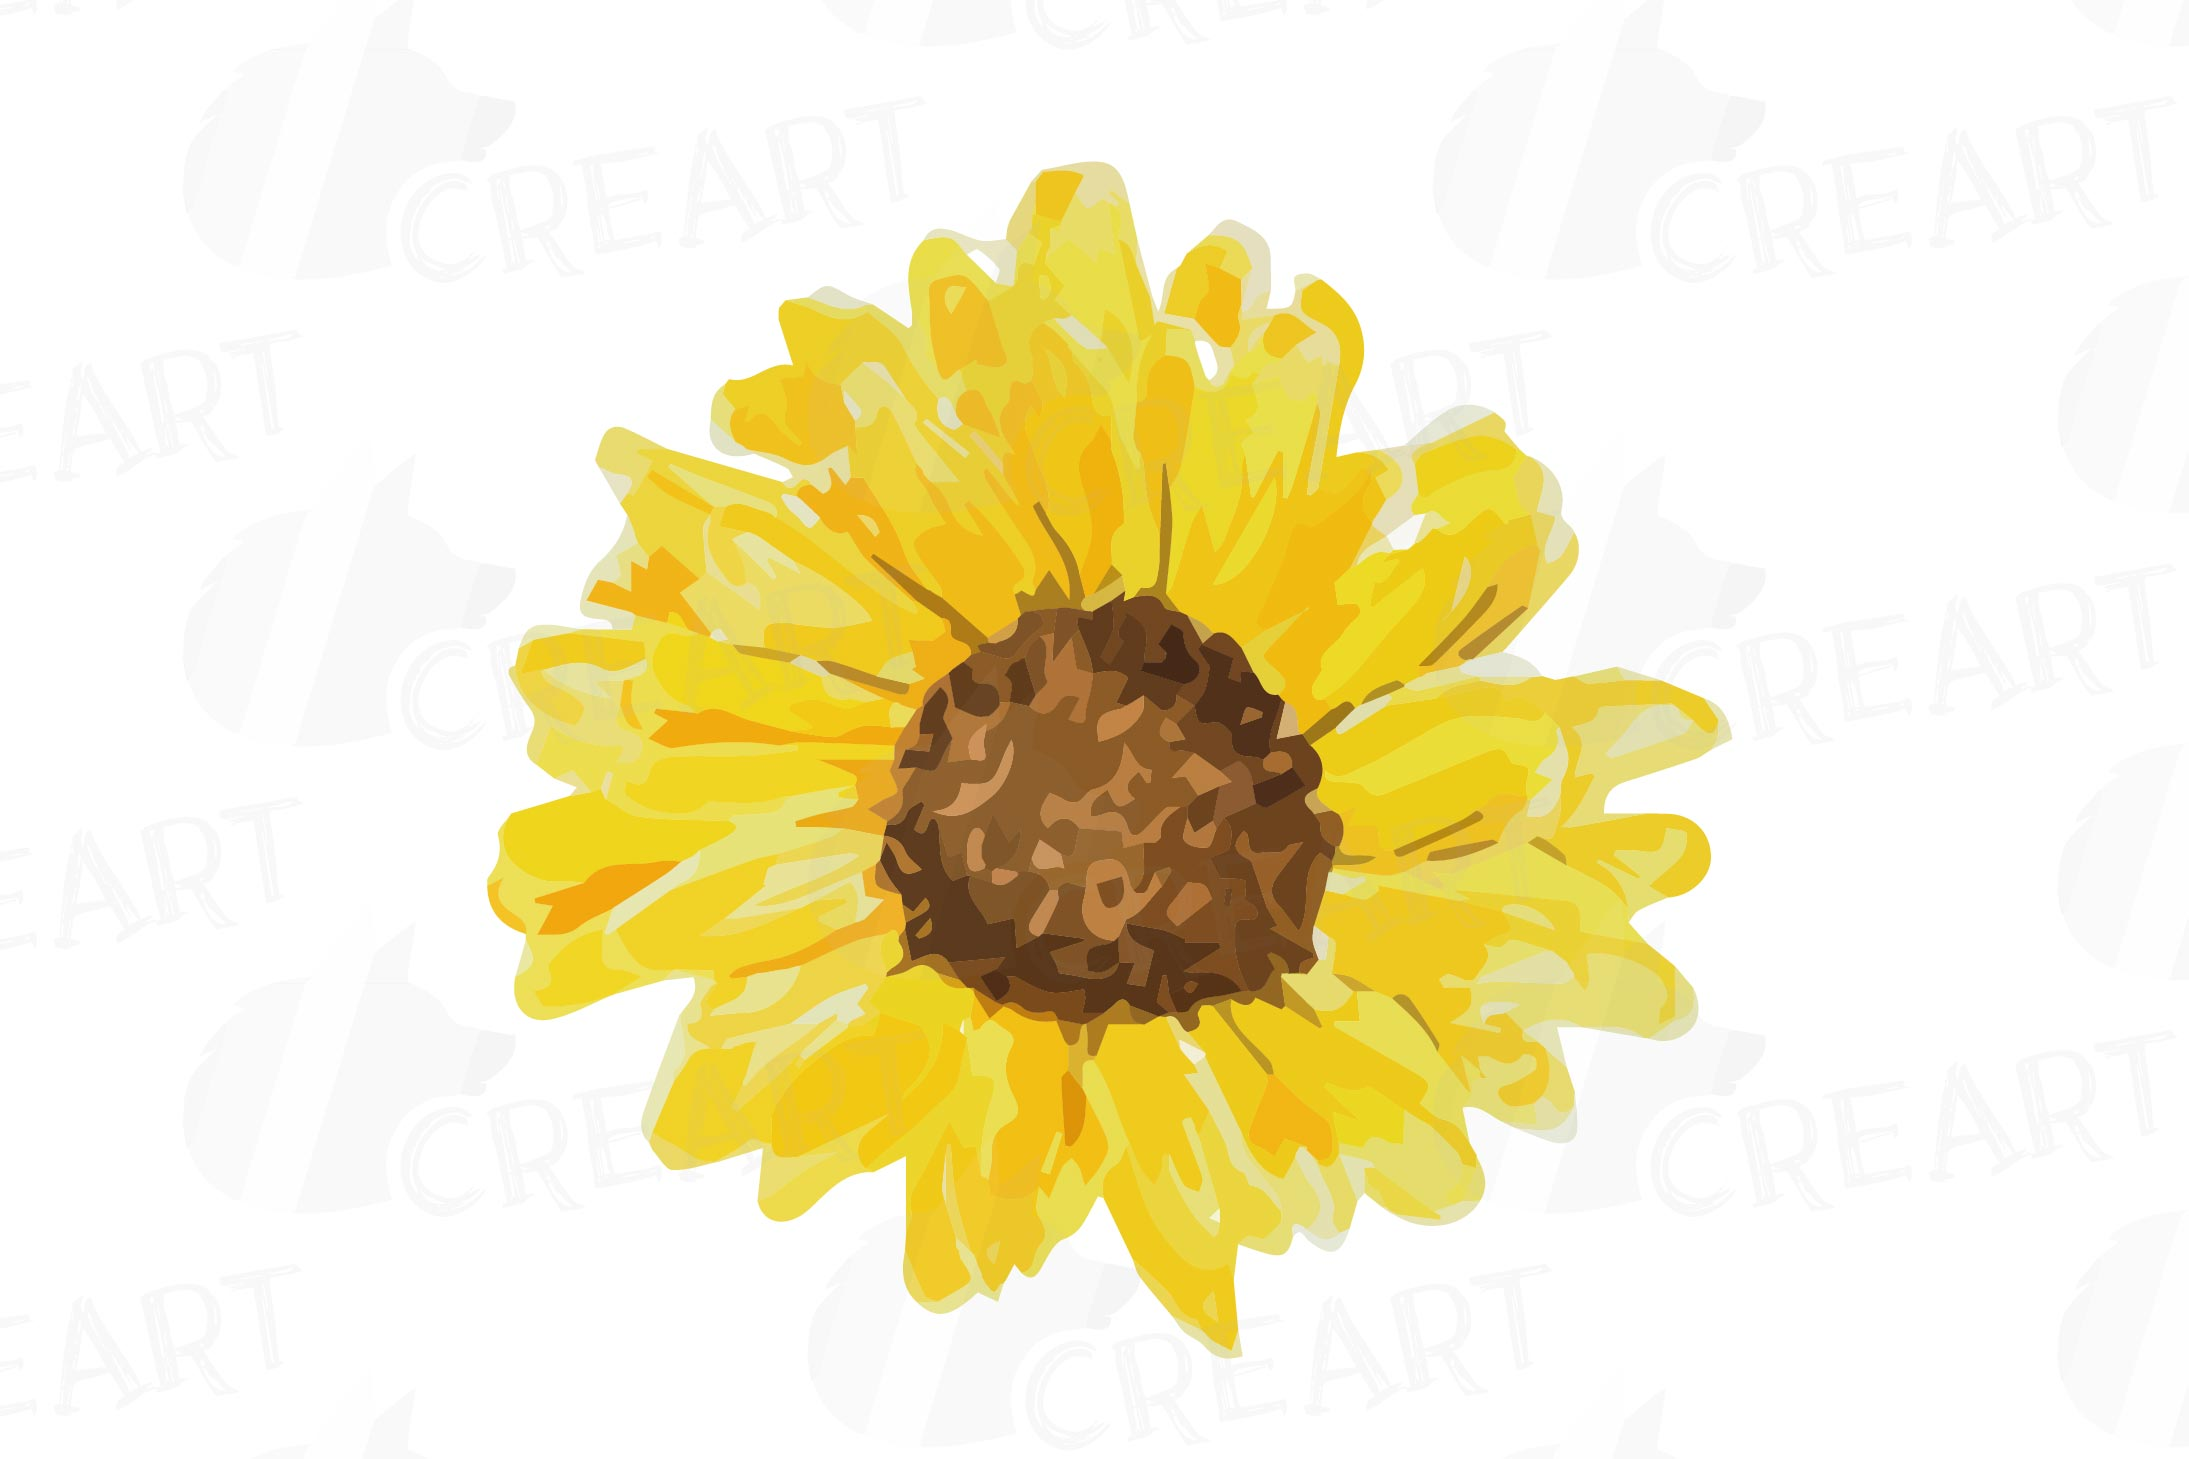 Sunflower watercolor clipart png black and white download Sunflowers watercolor clip art pack 2, watercolor sunflower png black and white download